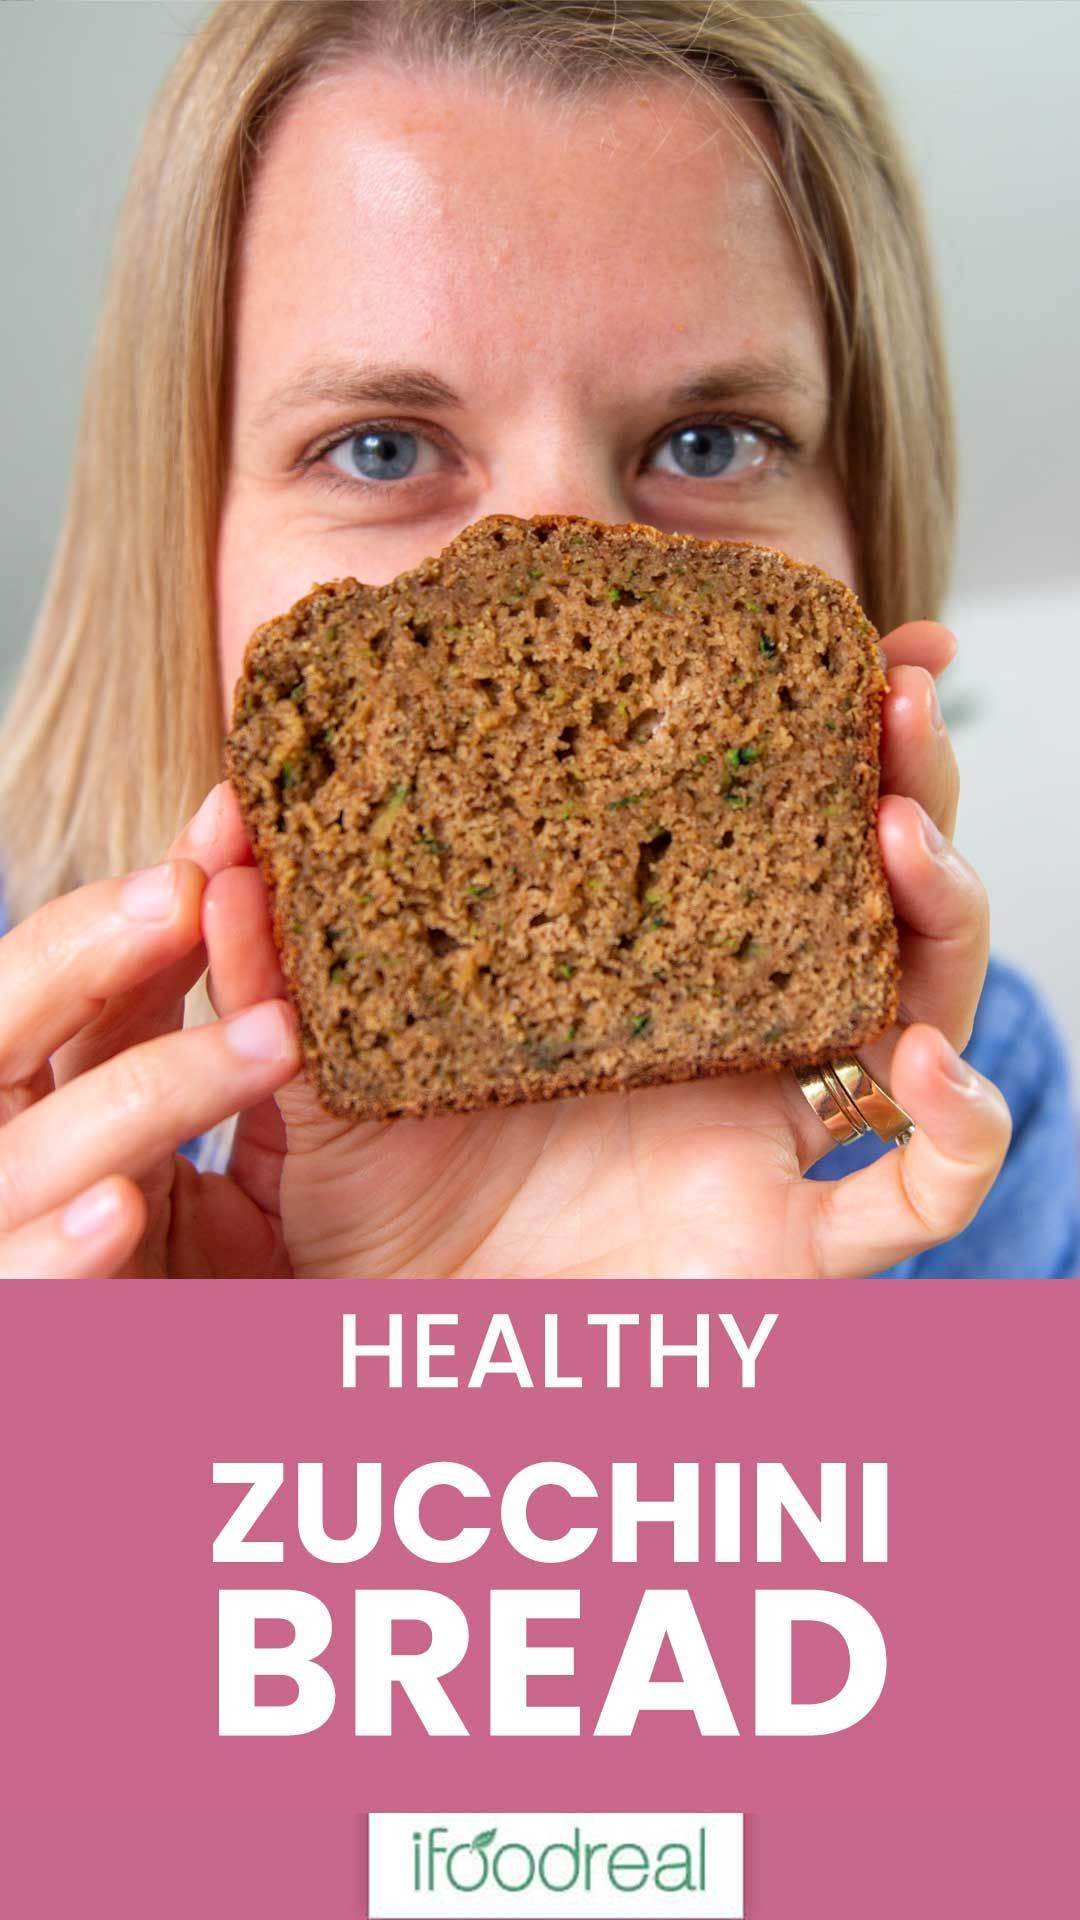 Healthy Zucchini Bread Recipe With Applesauce Whole Wheat Or Spelt Flour And Honey Super Delicious Ea With Images Zucchini Bread Healthy Healthy Zucchini Healthy Baking